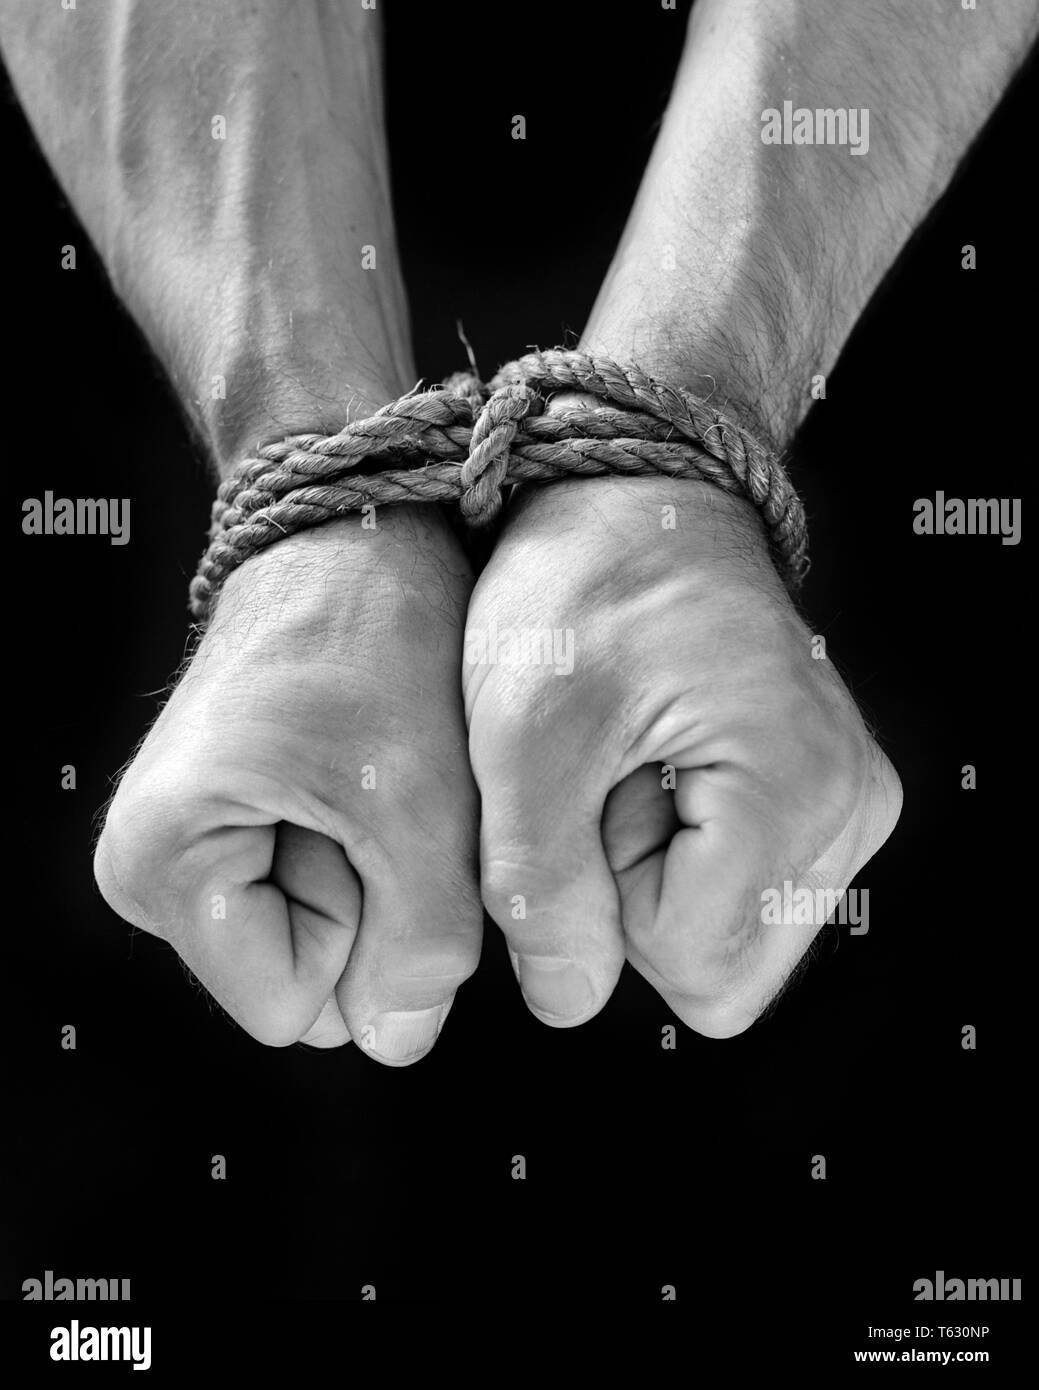 1940s male hands clinched in fists tied at wrist with heavy rope captive prisoner - s9422 HAR001 HARS PRISONER AT IN FISTS TIED UP CONCEPT CONCEPTUAL ESCAPE HOSTAGE CLINCHED SYMBOLIC CAPTIVE CONCEPTS BLACK AND WHITE BOUND CAPTURED CAUCASIAN ETHNICITY CONTROLLED HANDS ONLY HAR001 OLD FASHIONED REPRESENTATION RESTRAINED - Stock Image